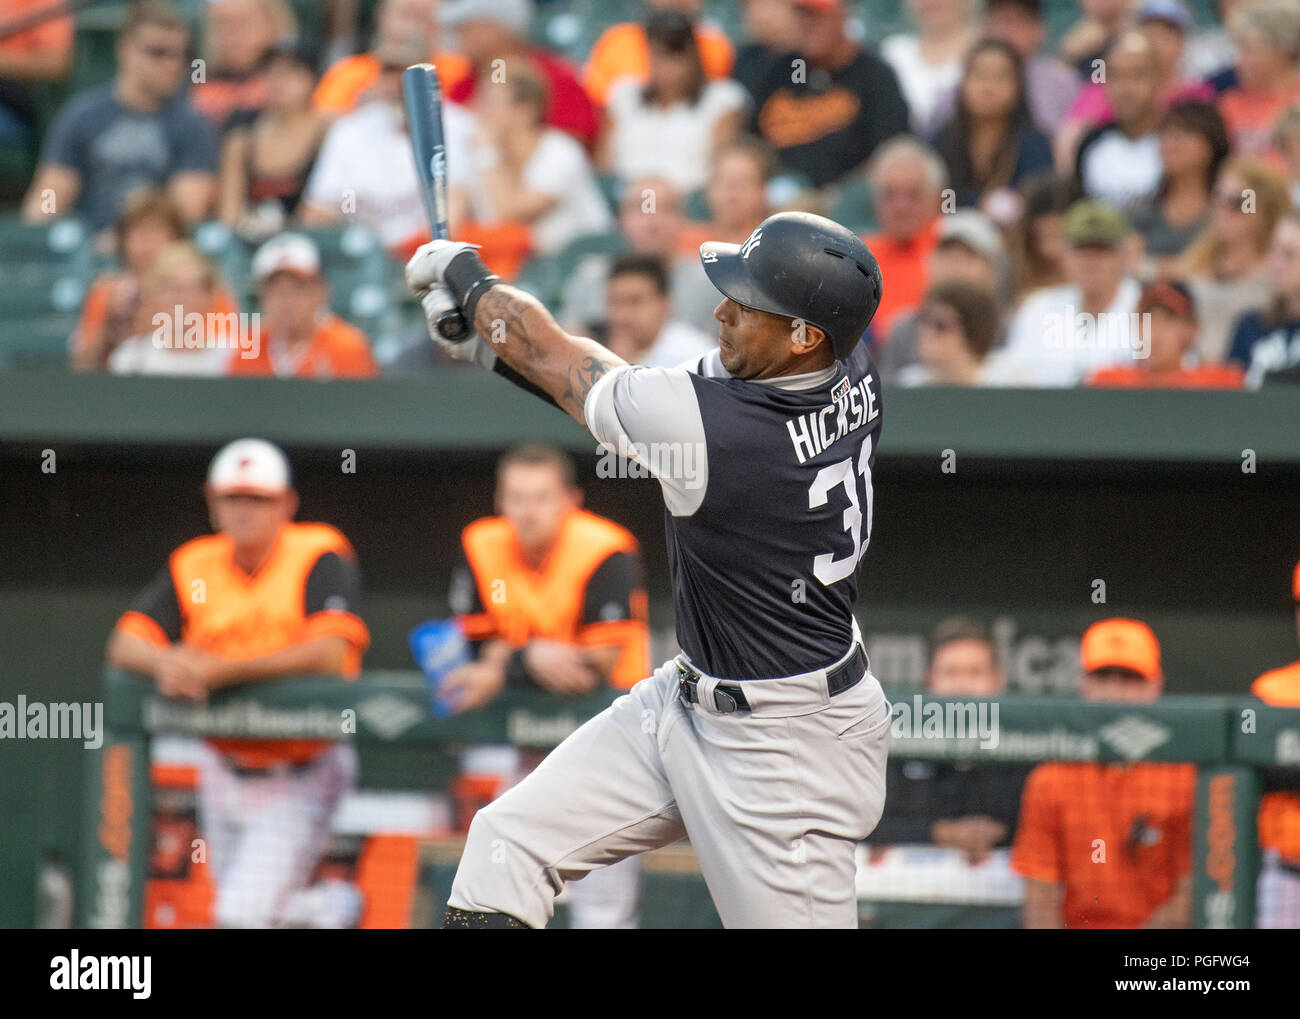 Baltimore, United States Of America. 24th Aug, 2018. New York Yankees center fielder Aaron Hicks (31) bats in the first inning against the Baltimore Orioles at Oriole Park at Camden Yards in Baltimore, MD on Friday, August 24, 2018. Credit: Ron Sachs/CNP (RESTRICTION: NO New York or New Jersey Newspapers or newspapers within a 75 mile radius of New York City) | usage worldwide Credit: dpa/Alamy Live News Stock Photo